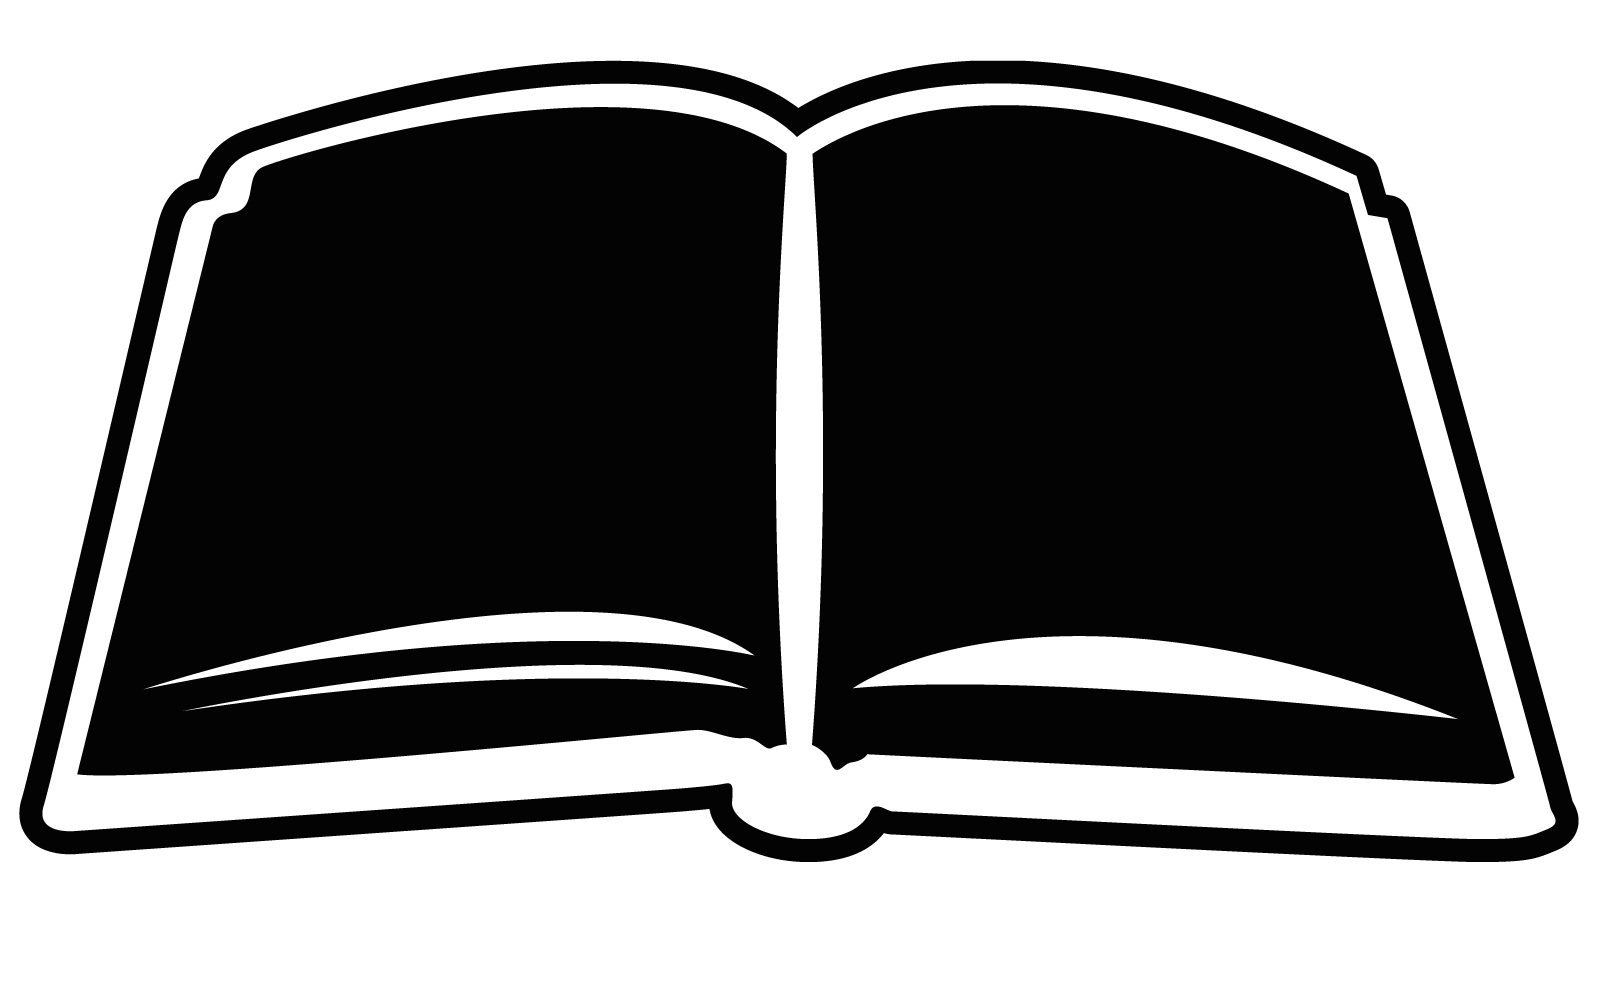 Open Book Clipart - PNG Open Book Black And White